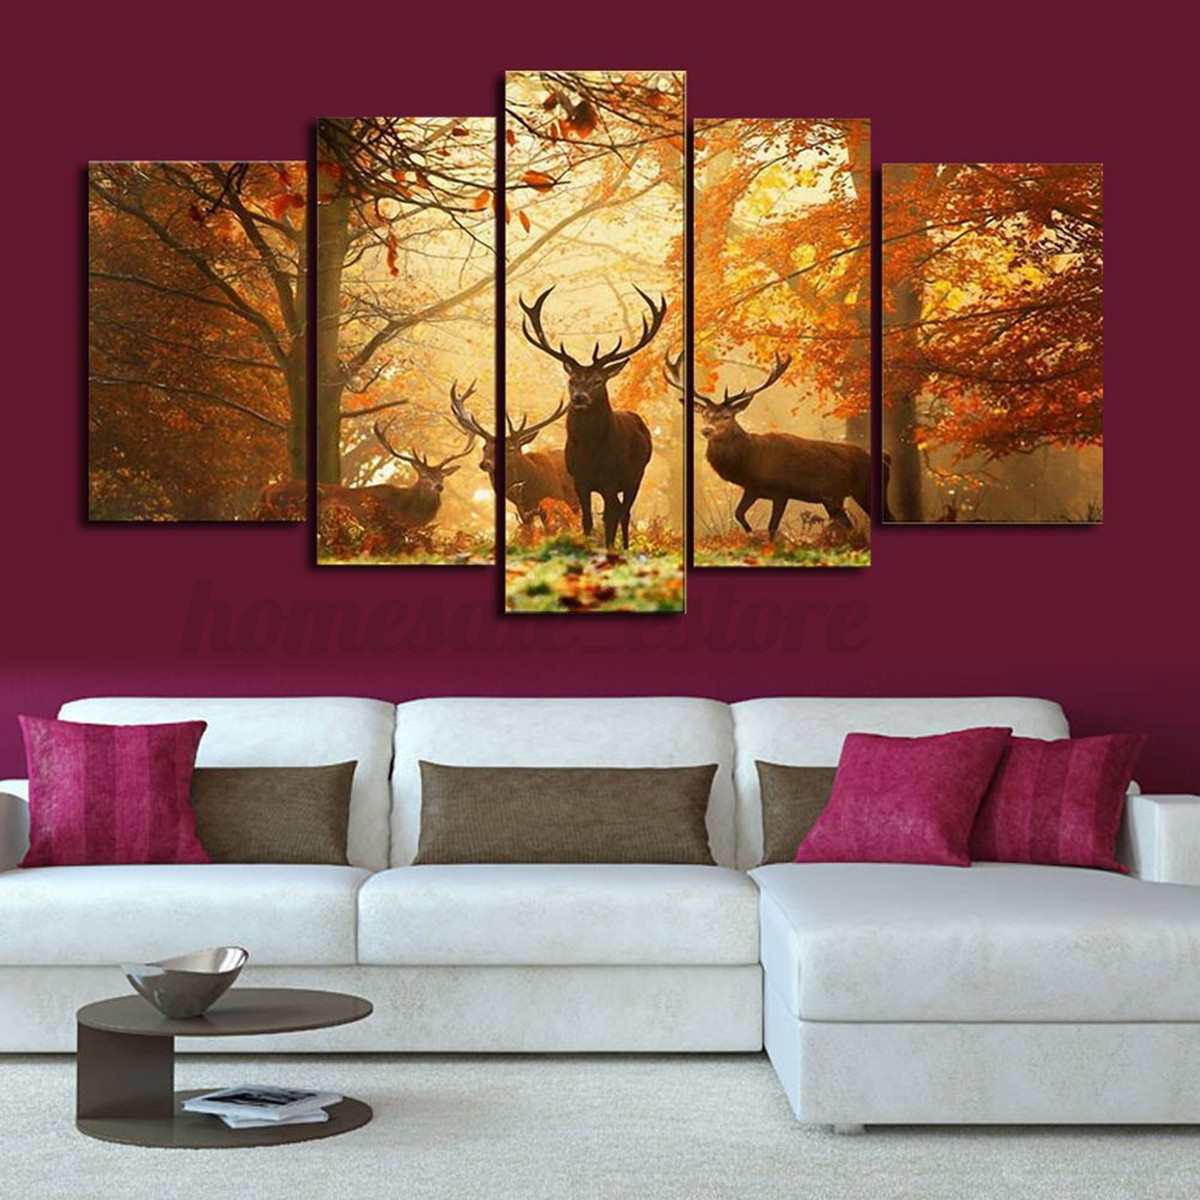 Contemporary Art Home Decor Hd Canvas Print Modern Scenery Animal Wall Art Oil